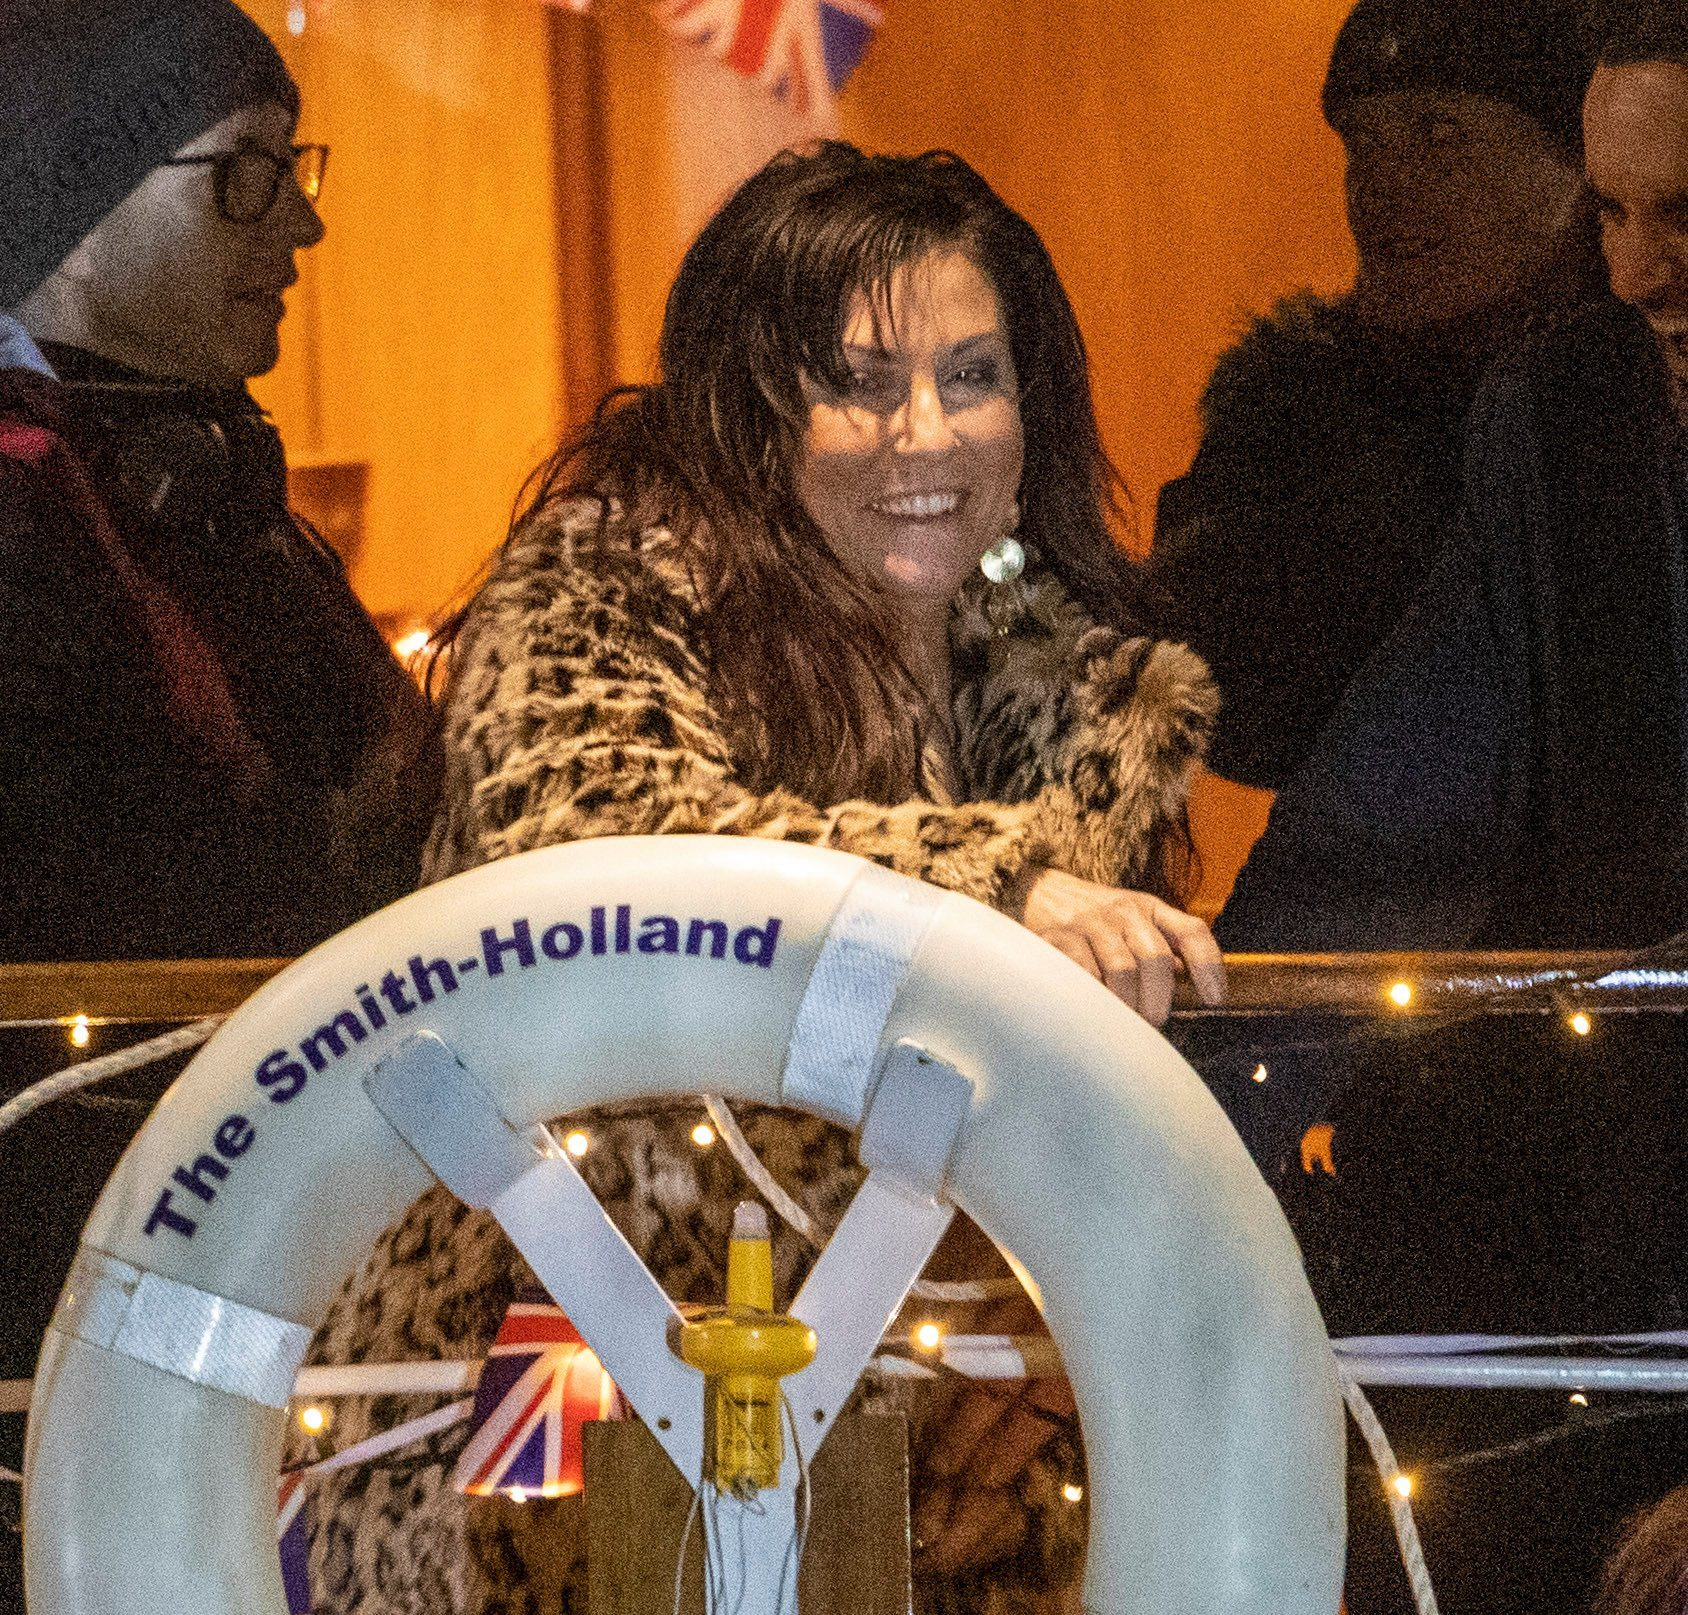 Actress Jessie was pictured holding on to a life ring and looking merry while filming EastEnders's 35th anniversary special days before her shock suspension